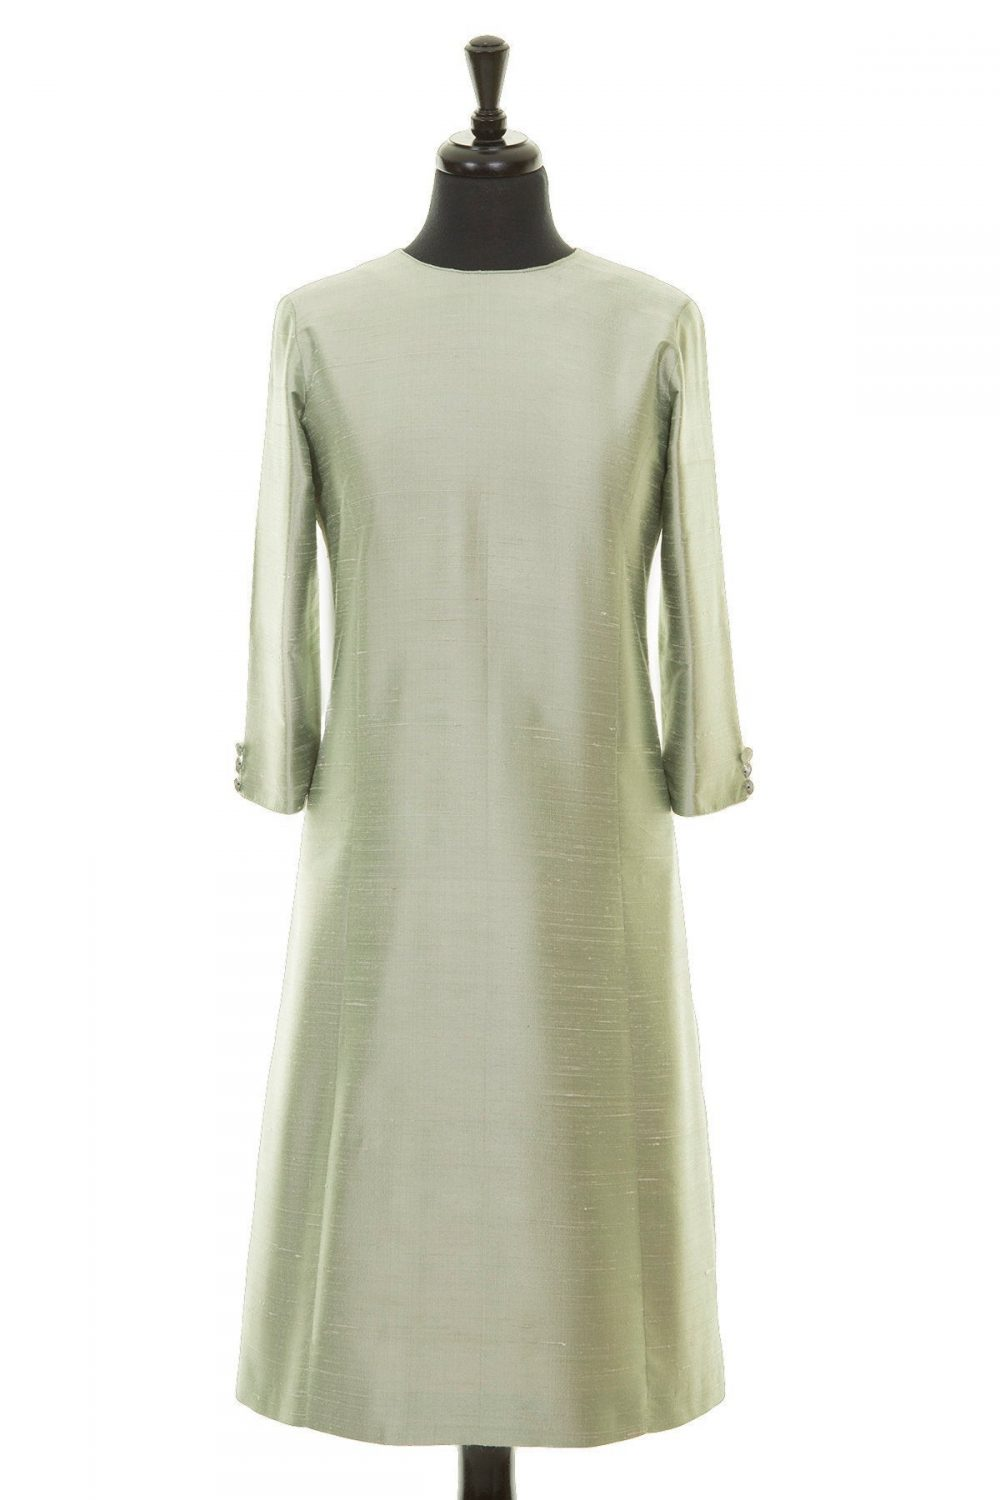 Ladies Pale Green Raw Silk A-Line Dress, Mother Of The Bride Outfit, Opera Plus Size, Petite, Bespoke